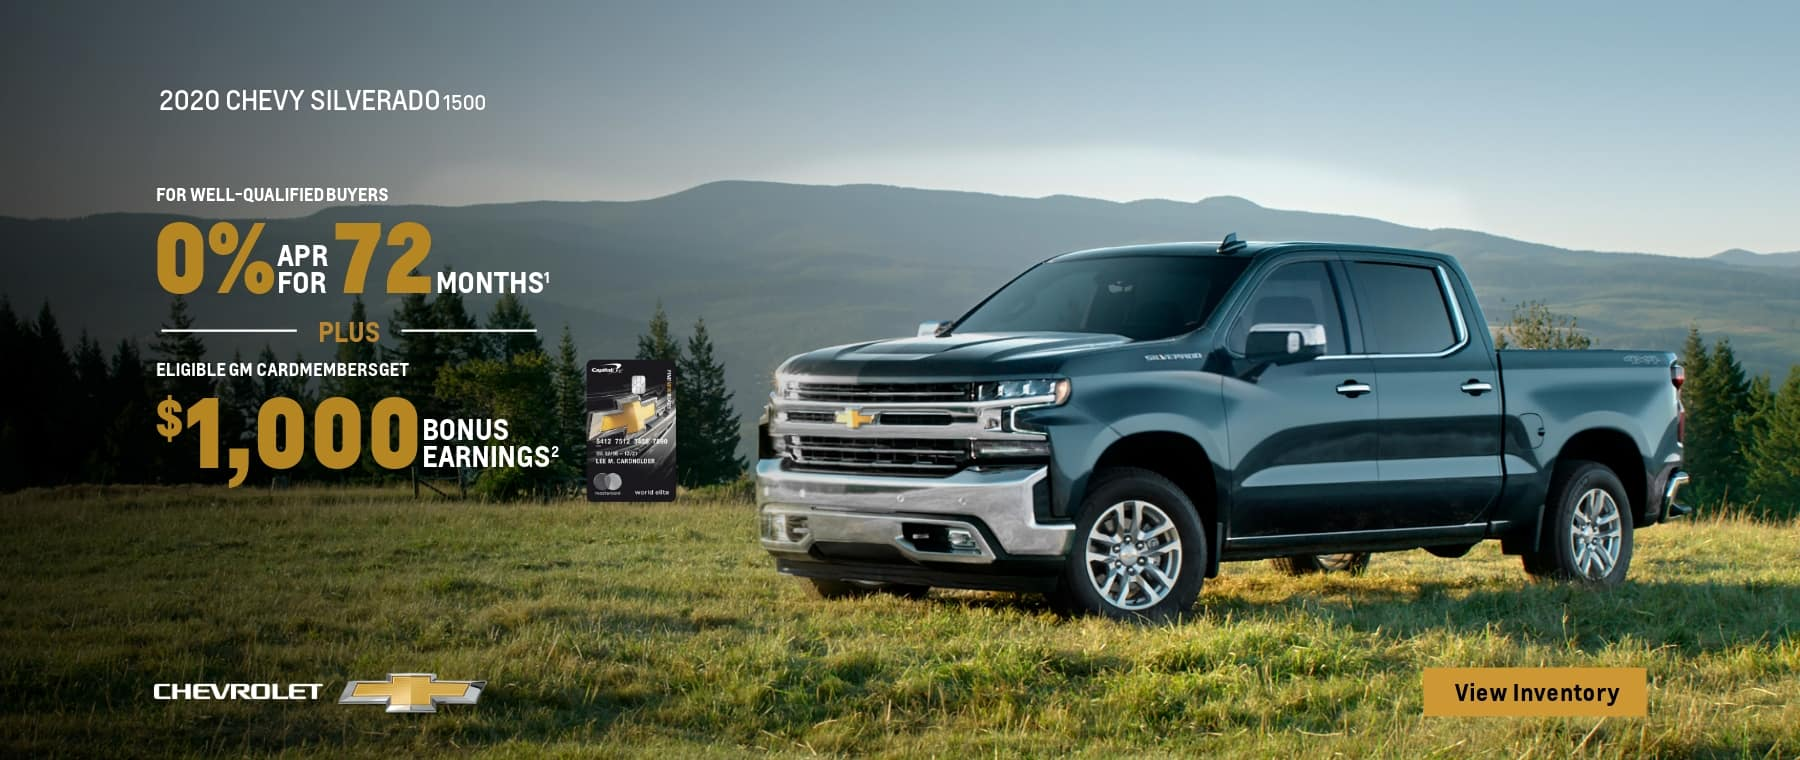 2020 Chevy Silverado 1500 - 0% financing for 72 months